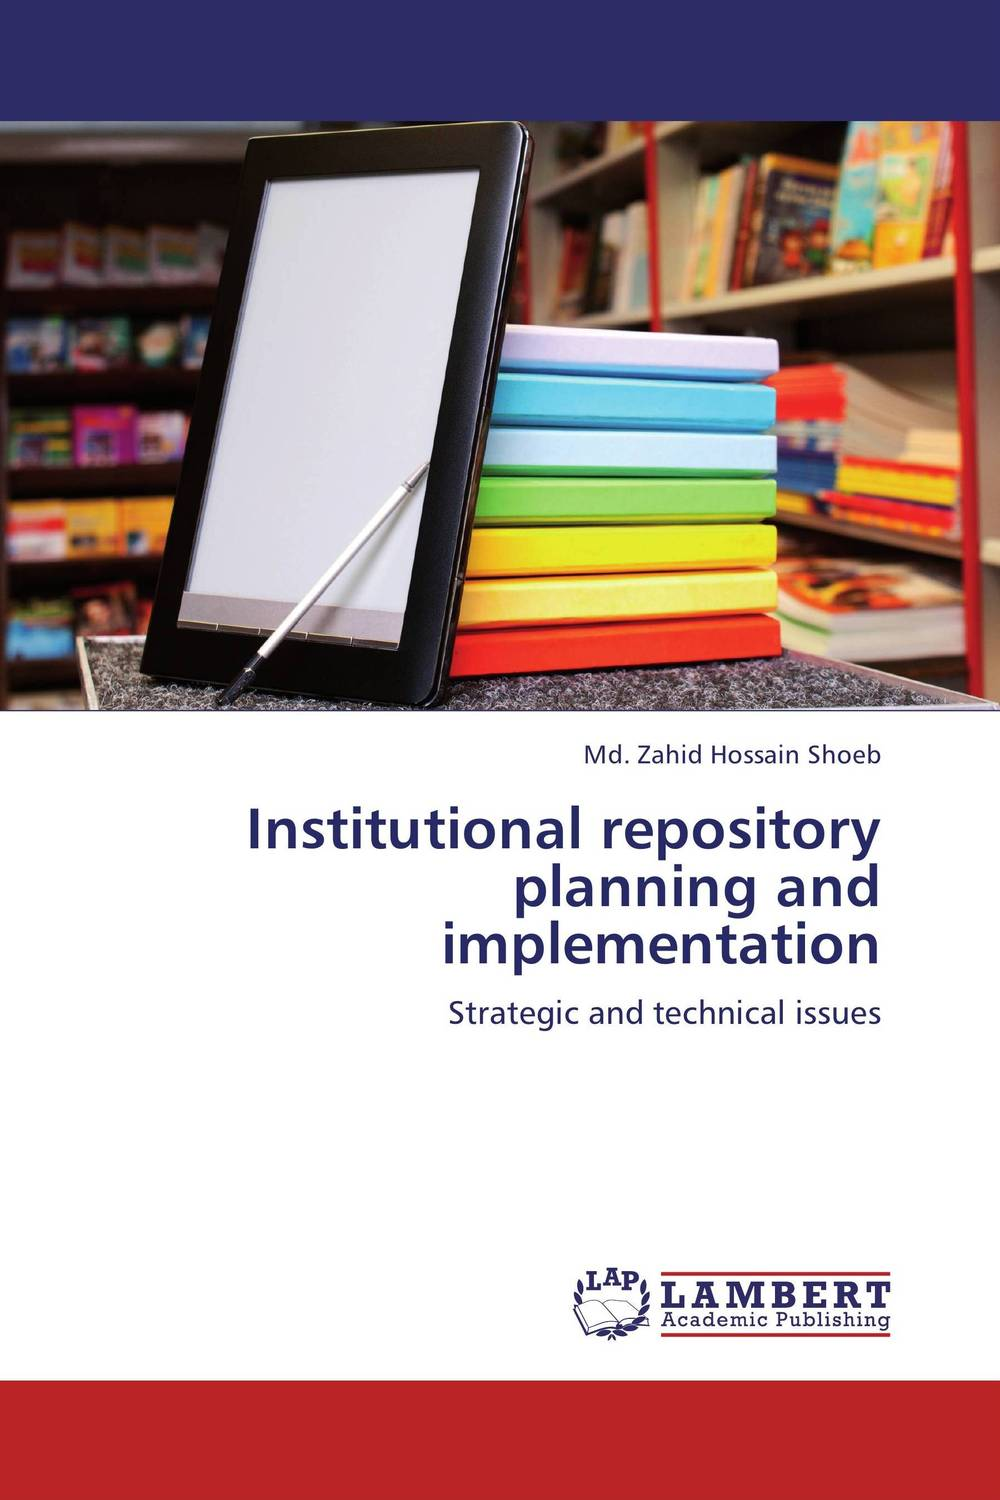 Institutional repository planning and implementation